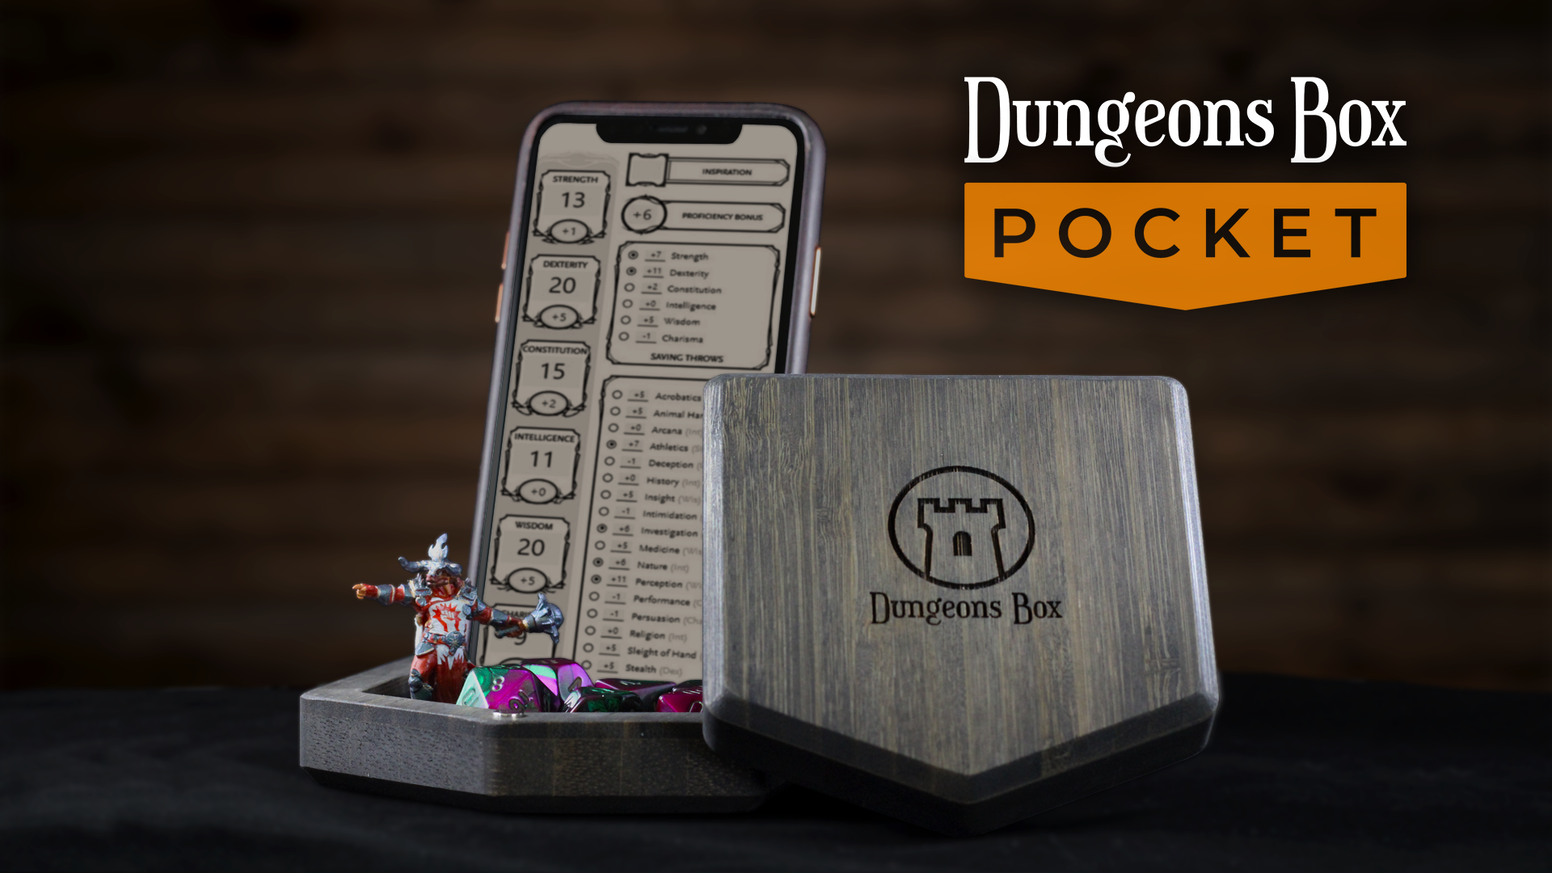 Your all-in-one D&D travel case! Complete with built-in phone stand, dice/miniature vault & rolling tray. Adventure anywhere!